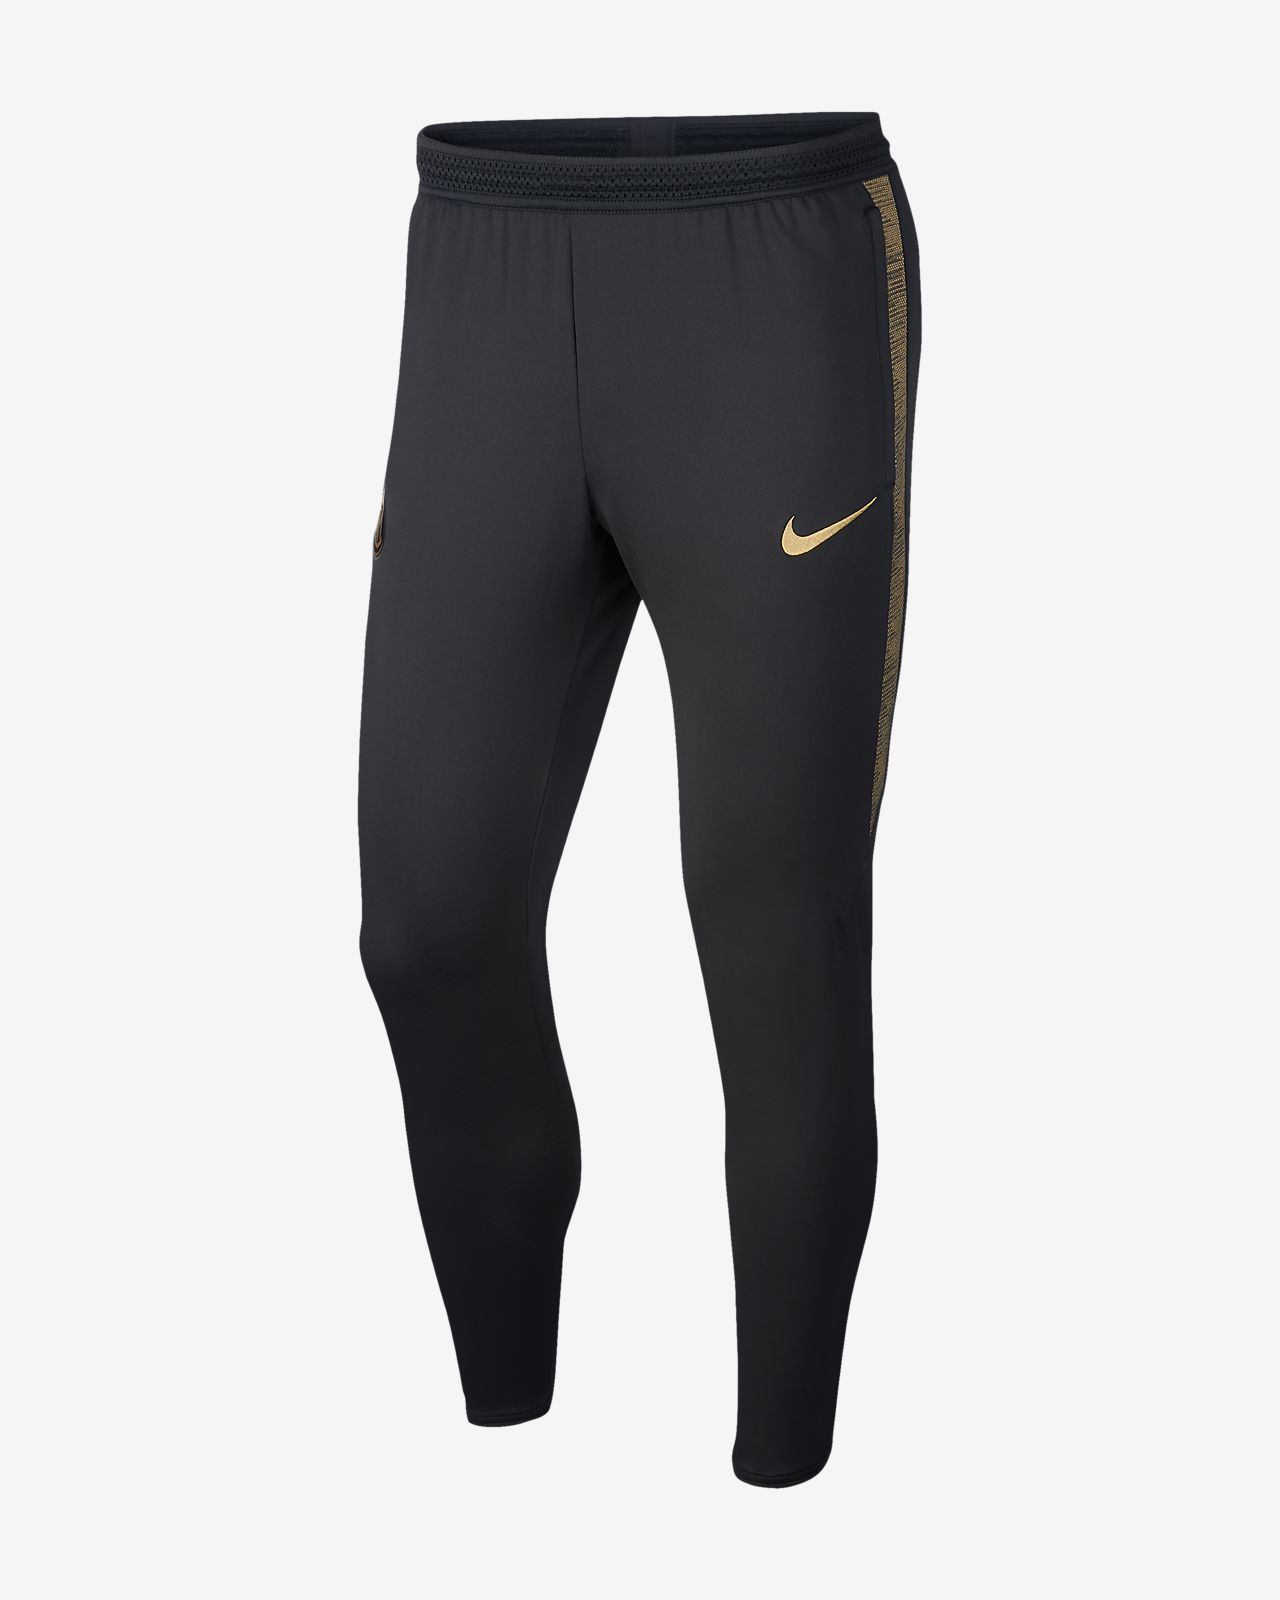 Inter Milan Strike Men's Football Pants